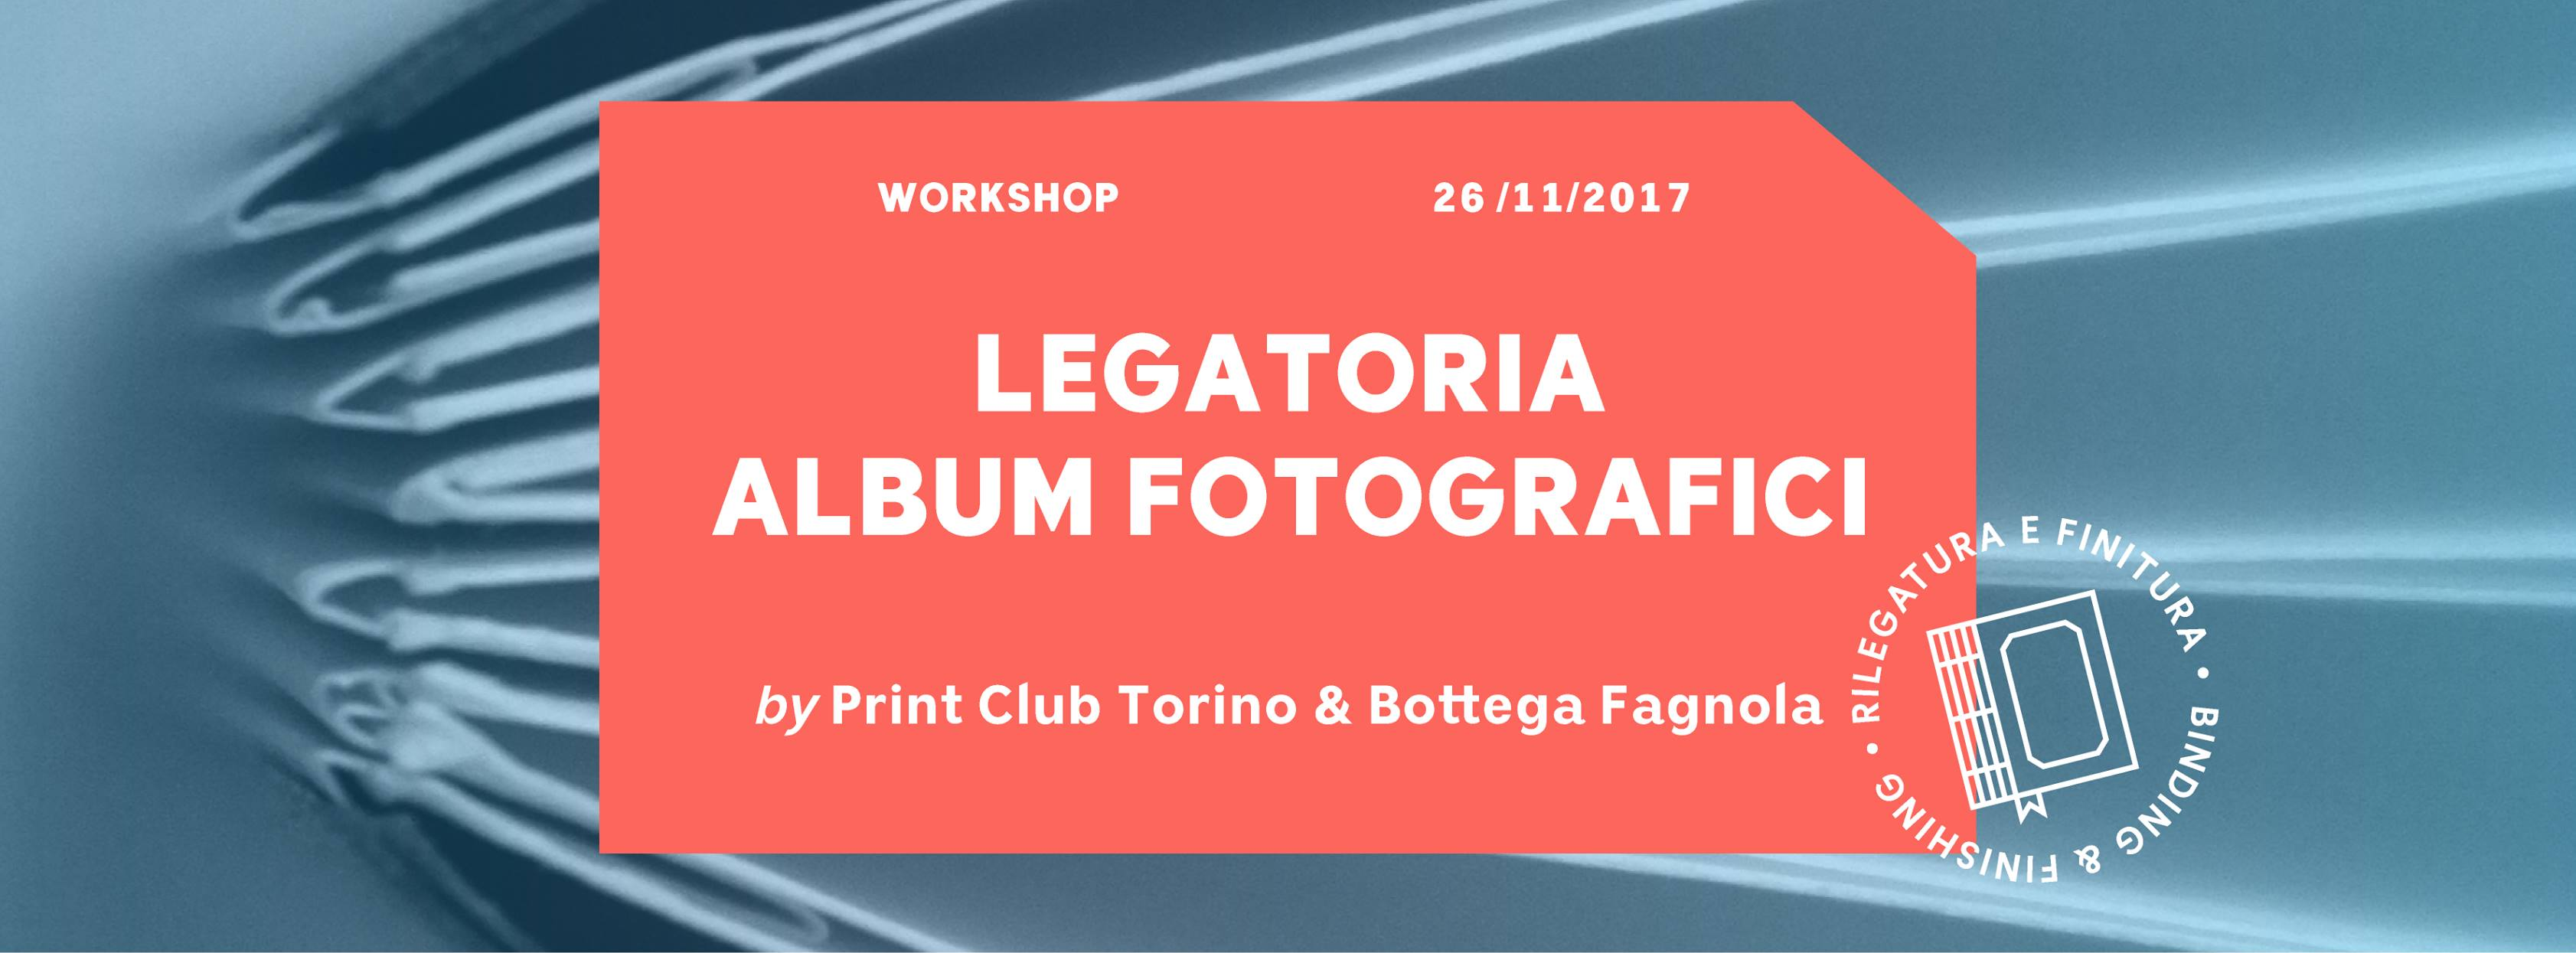 Workshop legatoria - album fotografici, Bottega Fagnola e Print Club Torino, 26 novembre 2017